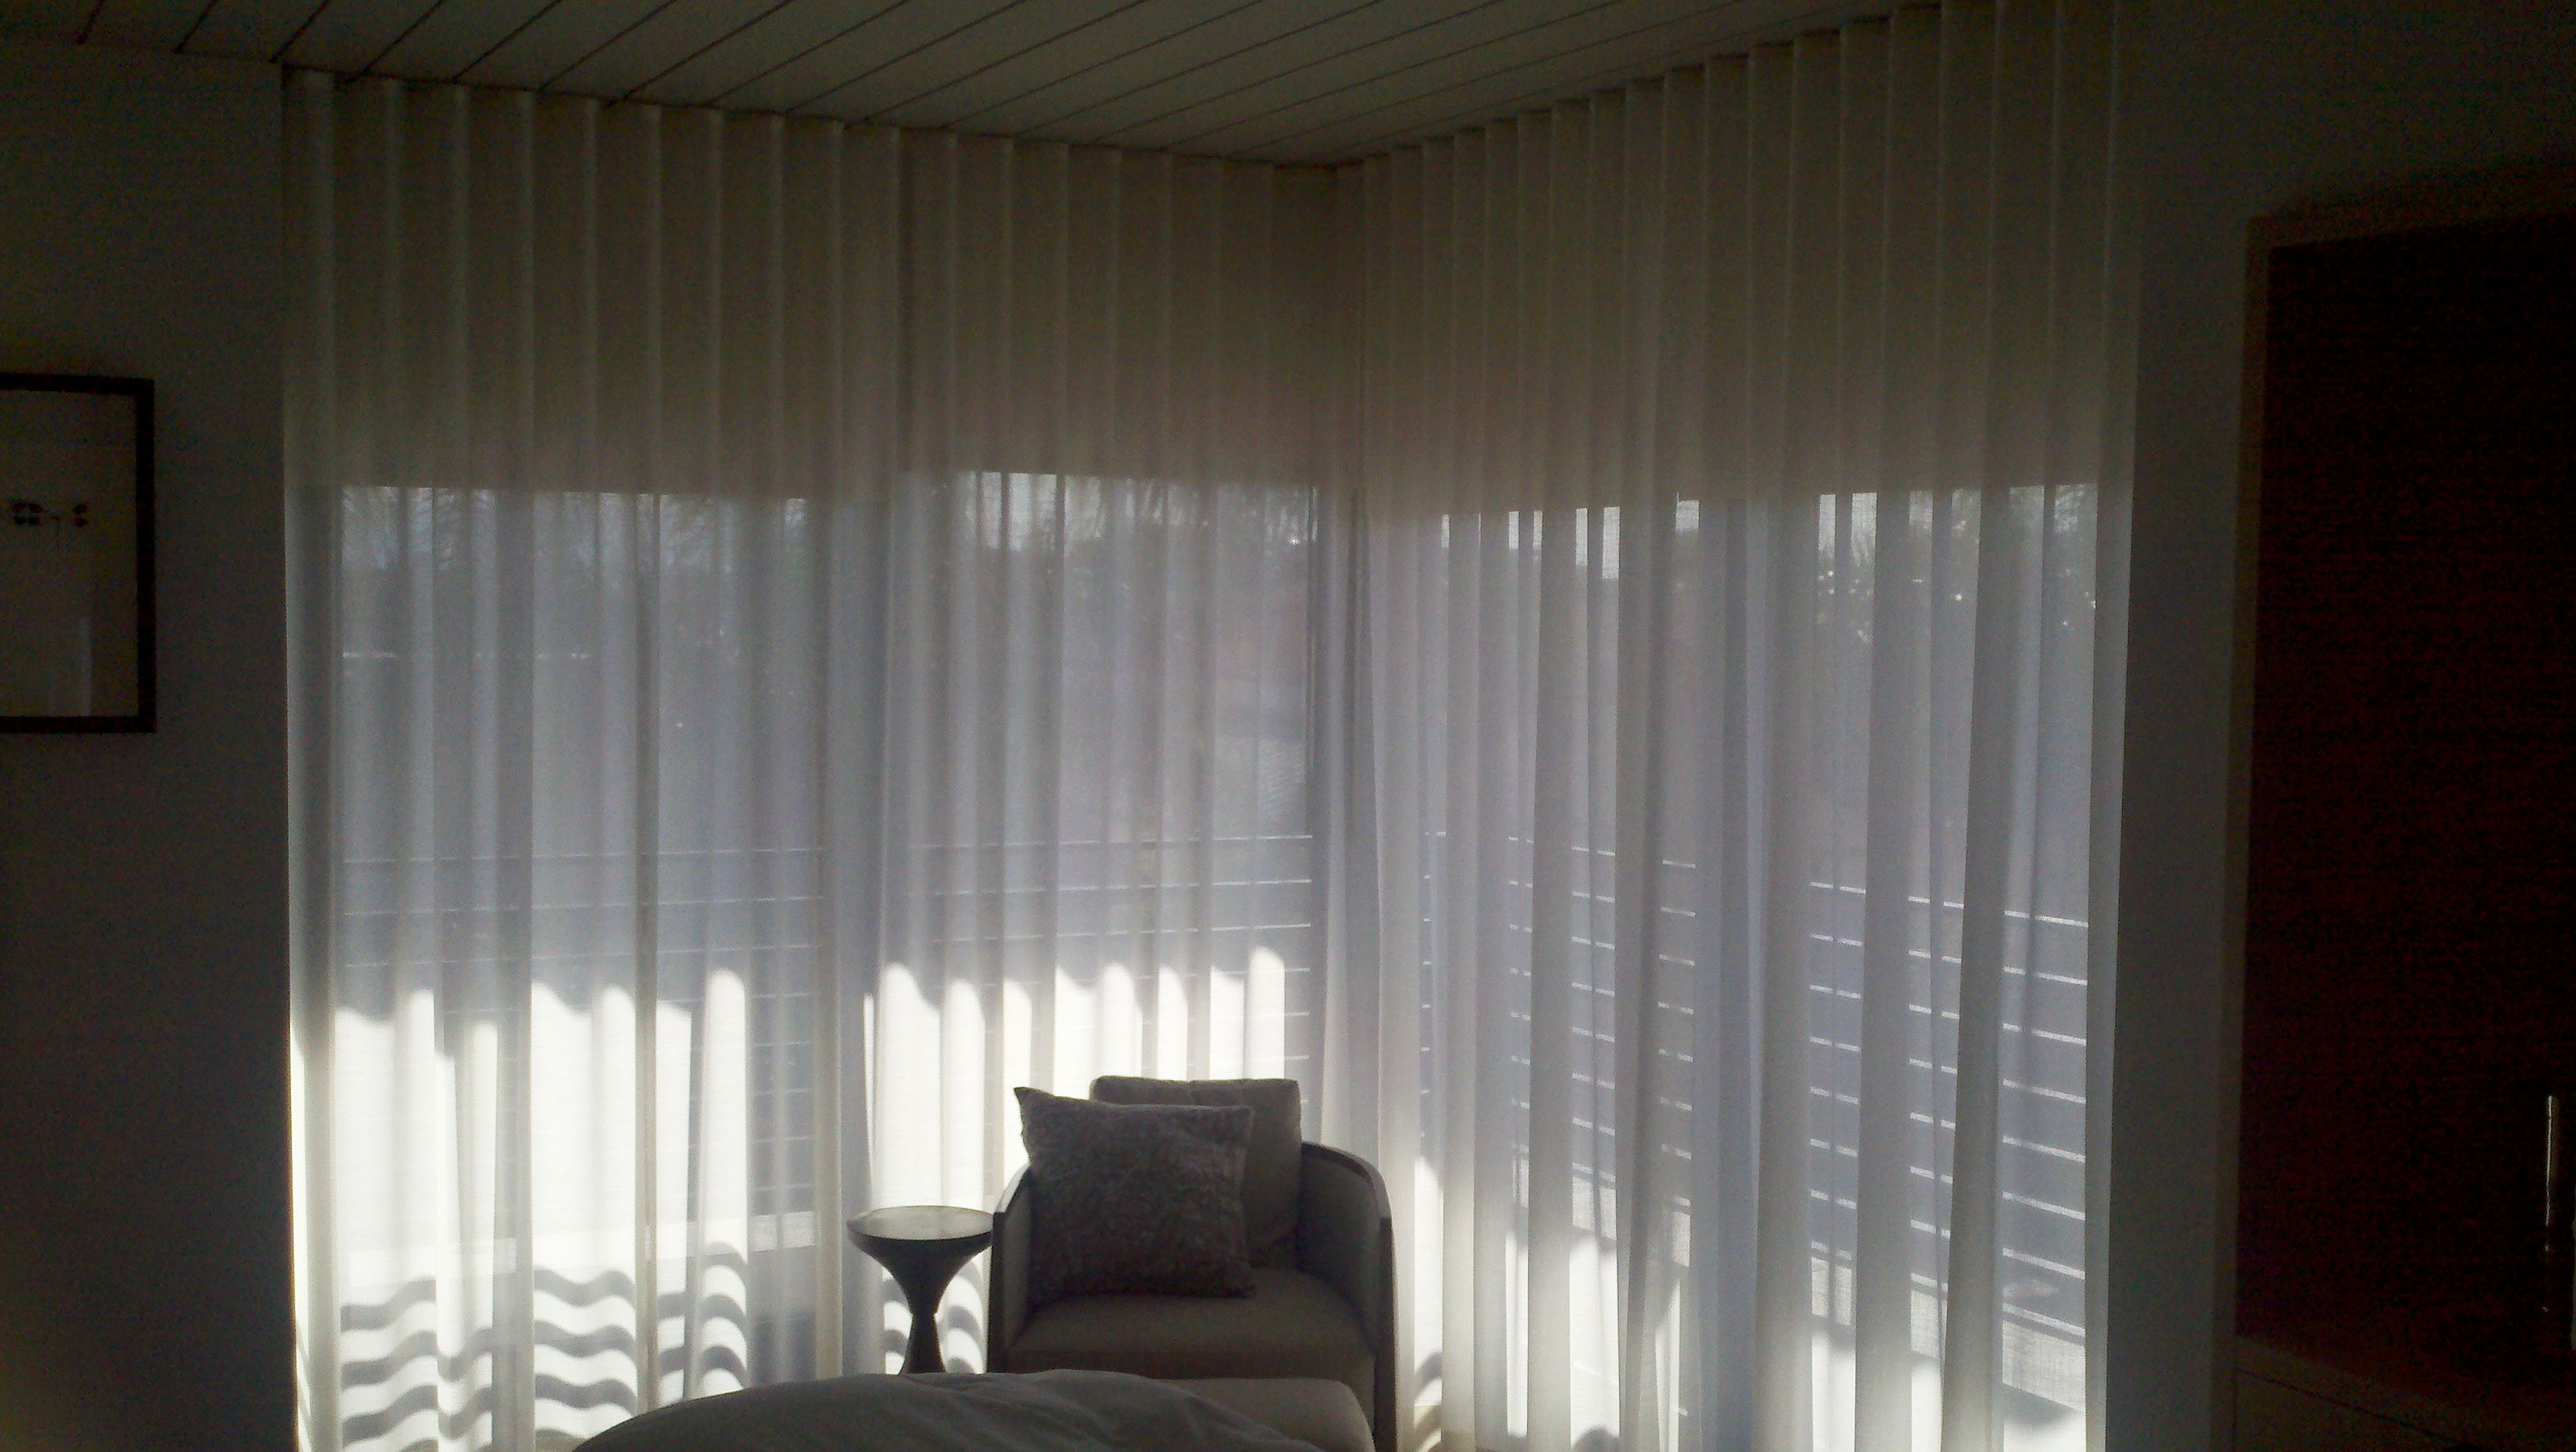 drapes roman picture curtains curtain pinterest to motorized full shades of best formidable on bottom size blinds roller matchcurtains and tocurtains upnds ideas vertical concept solar match